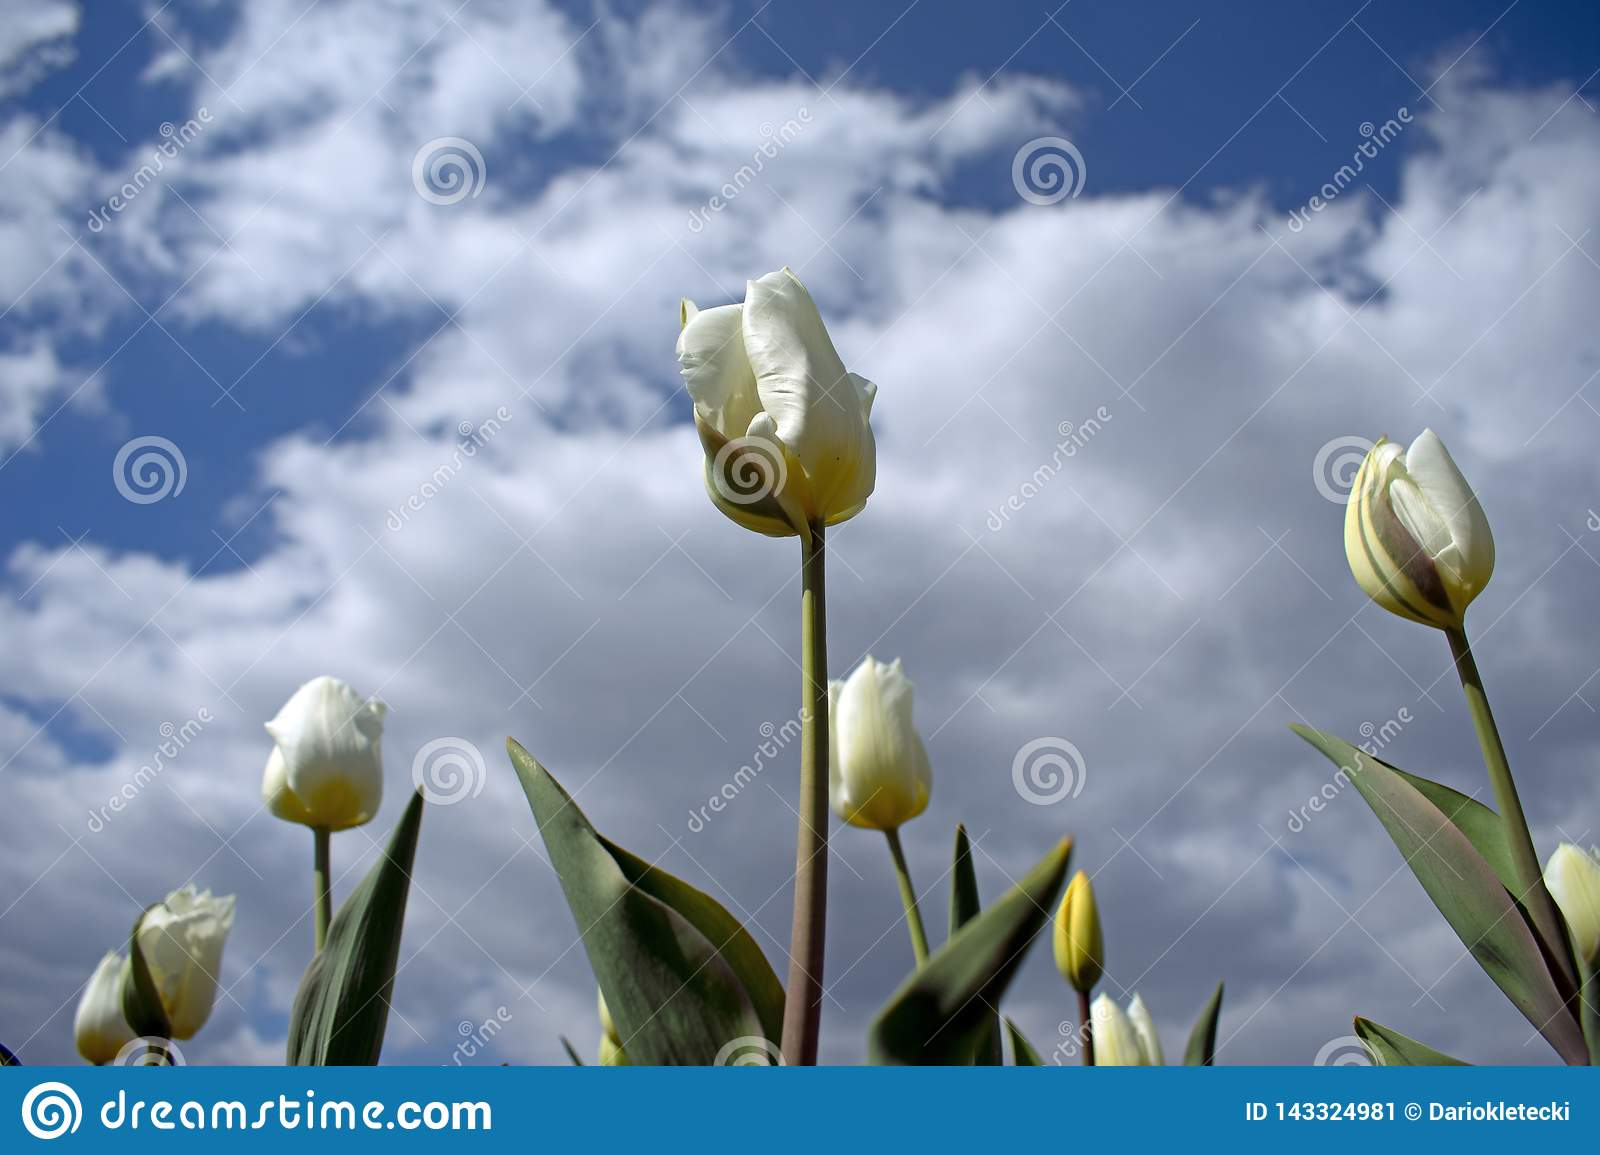 Close up of white tulip flowers